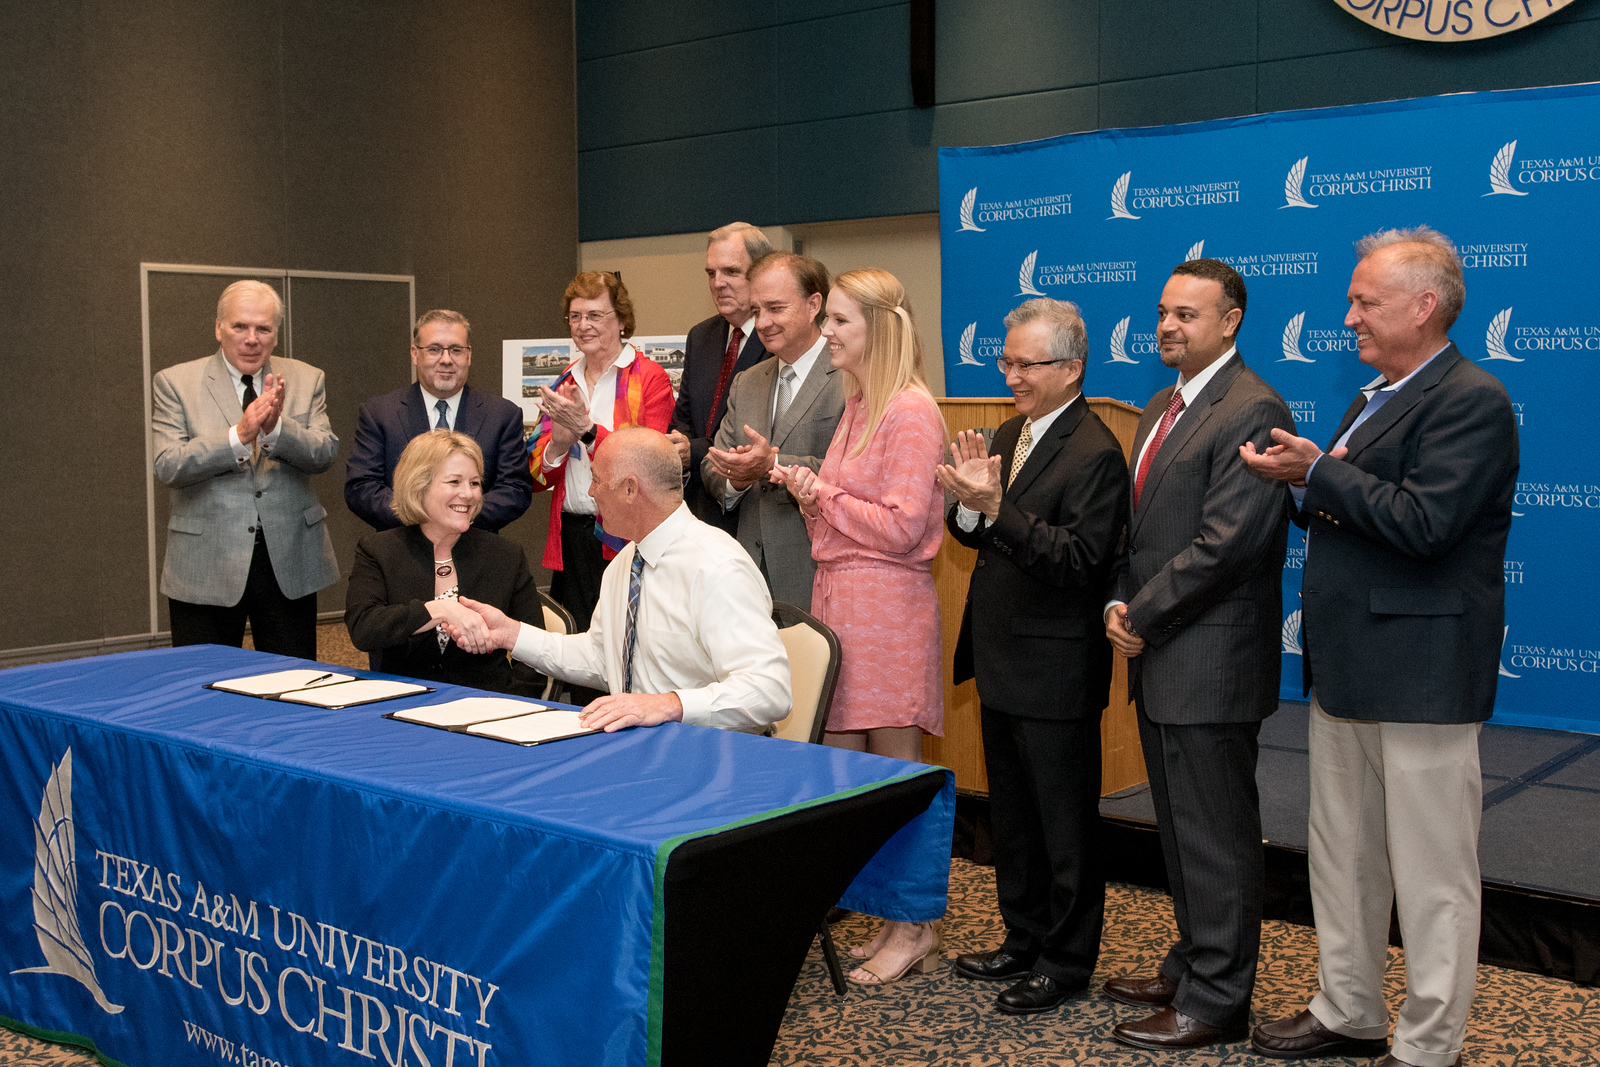 Interim President Kelly Quintanilla and Robert Johnson shake hands as dignitaries look on during the Innovative Aging Initiative Memorandum of Agreement Signing on Wednesday, March 22, 2017.